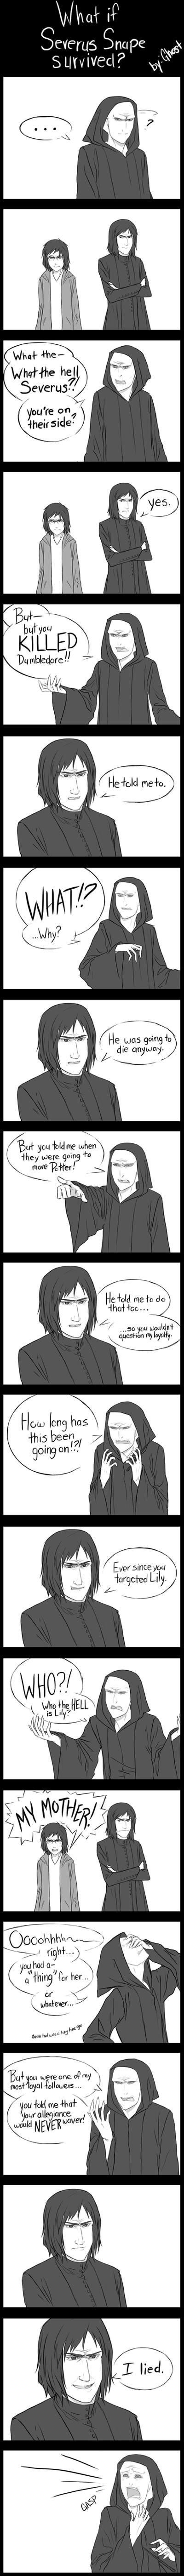 What if snape survived - :D oh so awesome! i love Voldie's expressions and that he totally doesn't know who Lily is :D